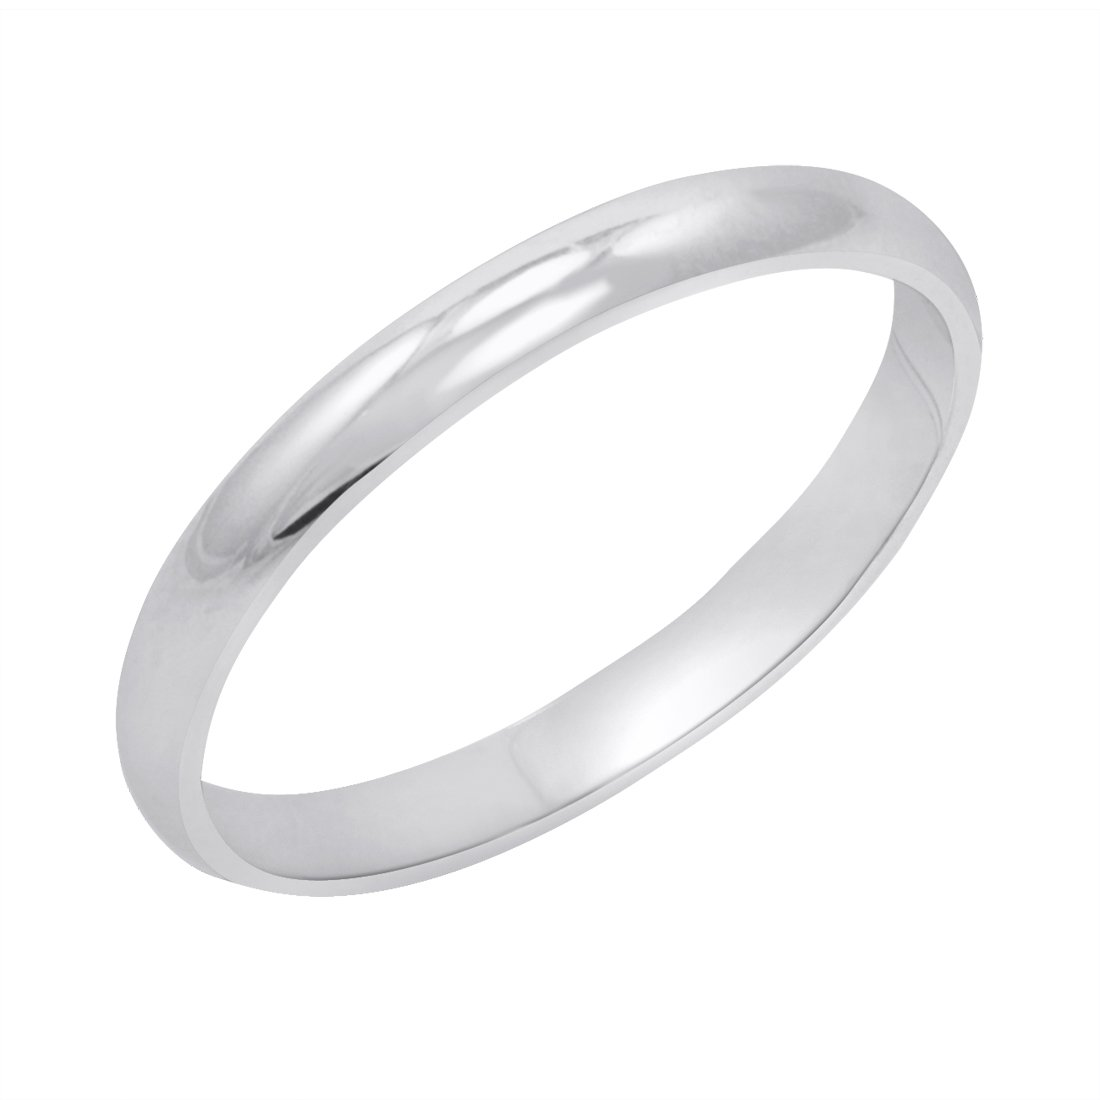 Women's 14K White Gold 2mm Classic Fit Plain Wedding Band (Available Ring Sizes 4-8 1/2) Size 6.5